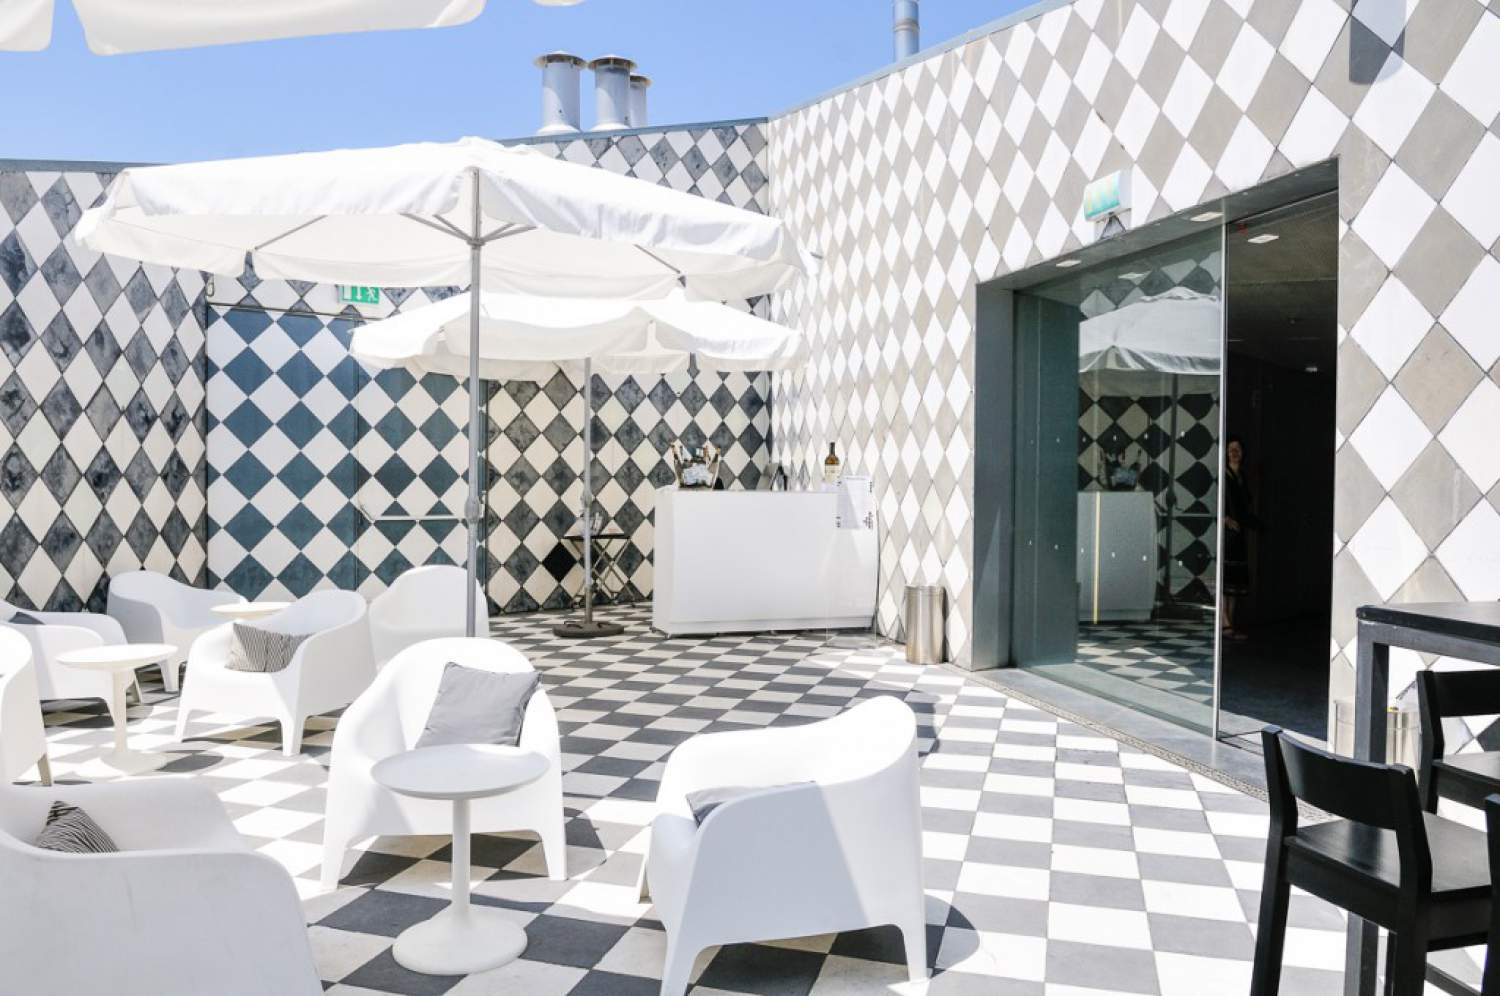 Terrasse of the Casa da Musica in Porto